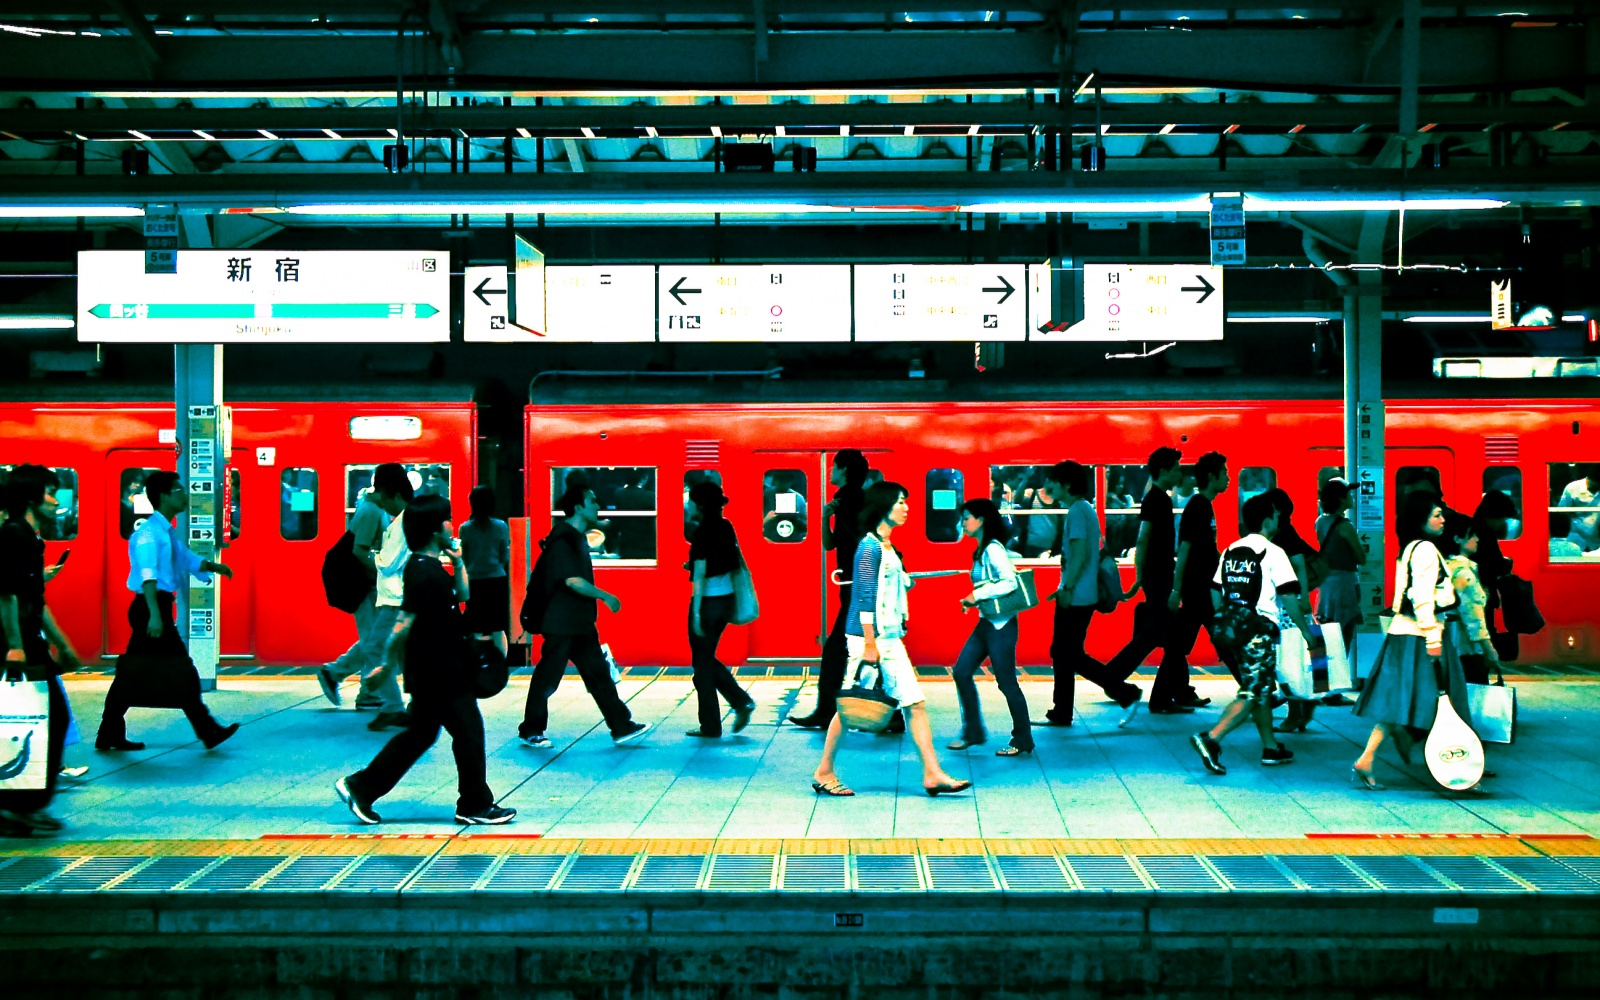 Well Trained: An Essential Guide to Etiquette on Japan's Rail System